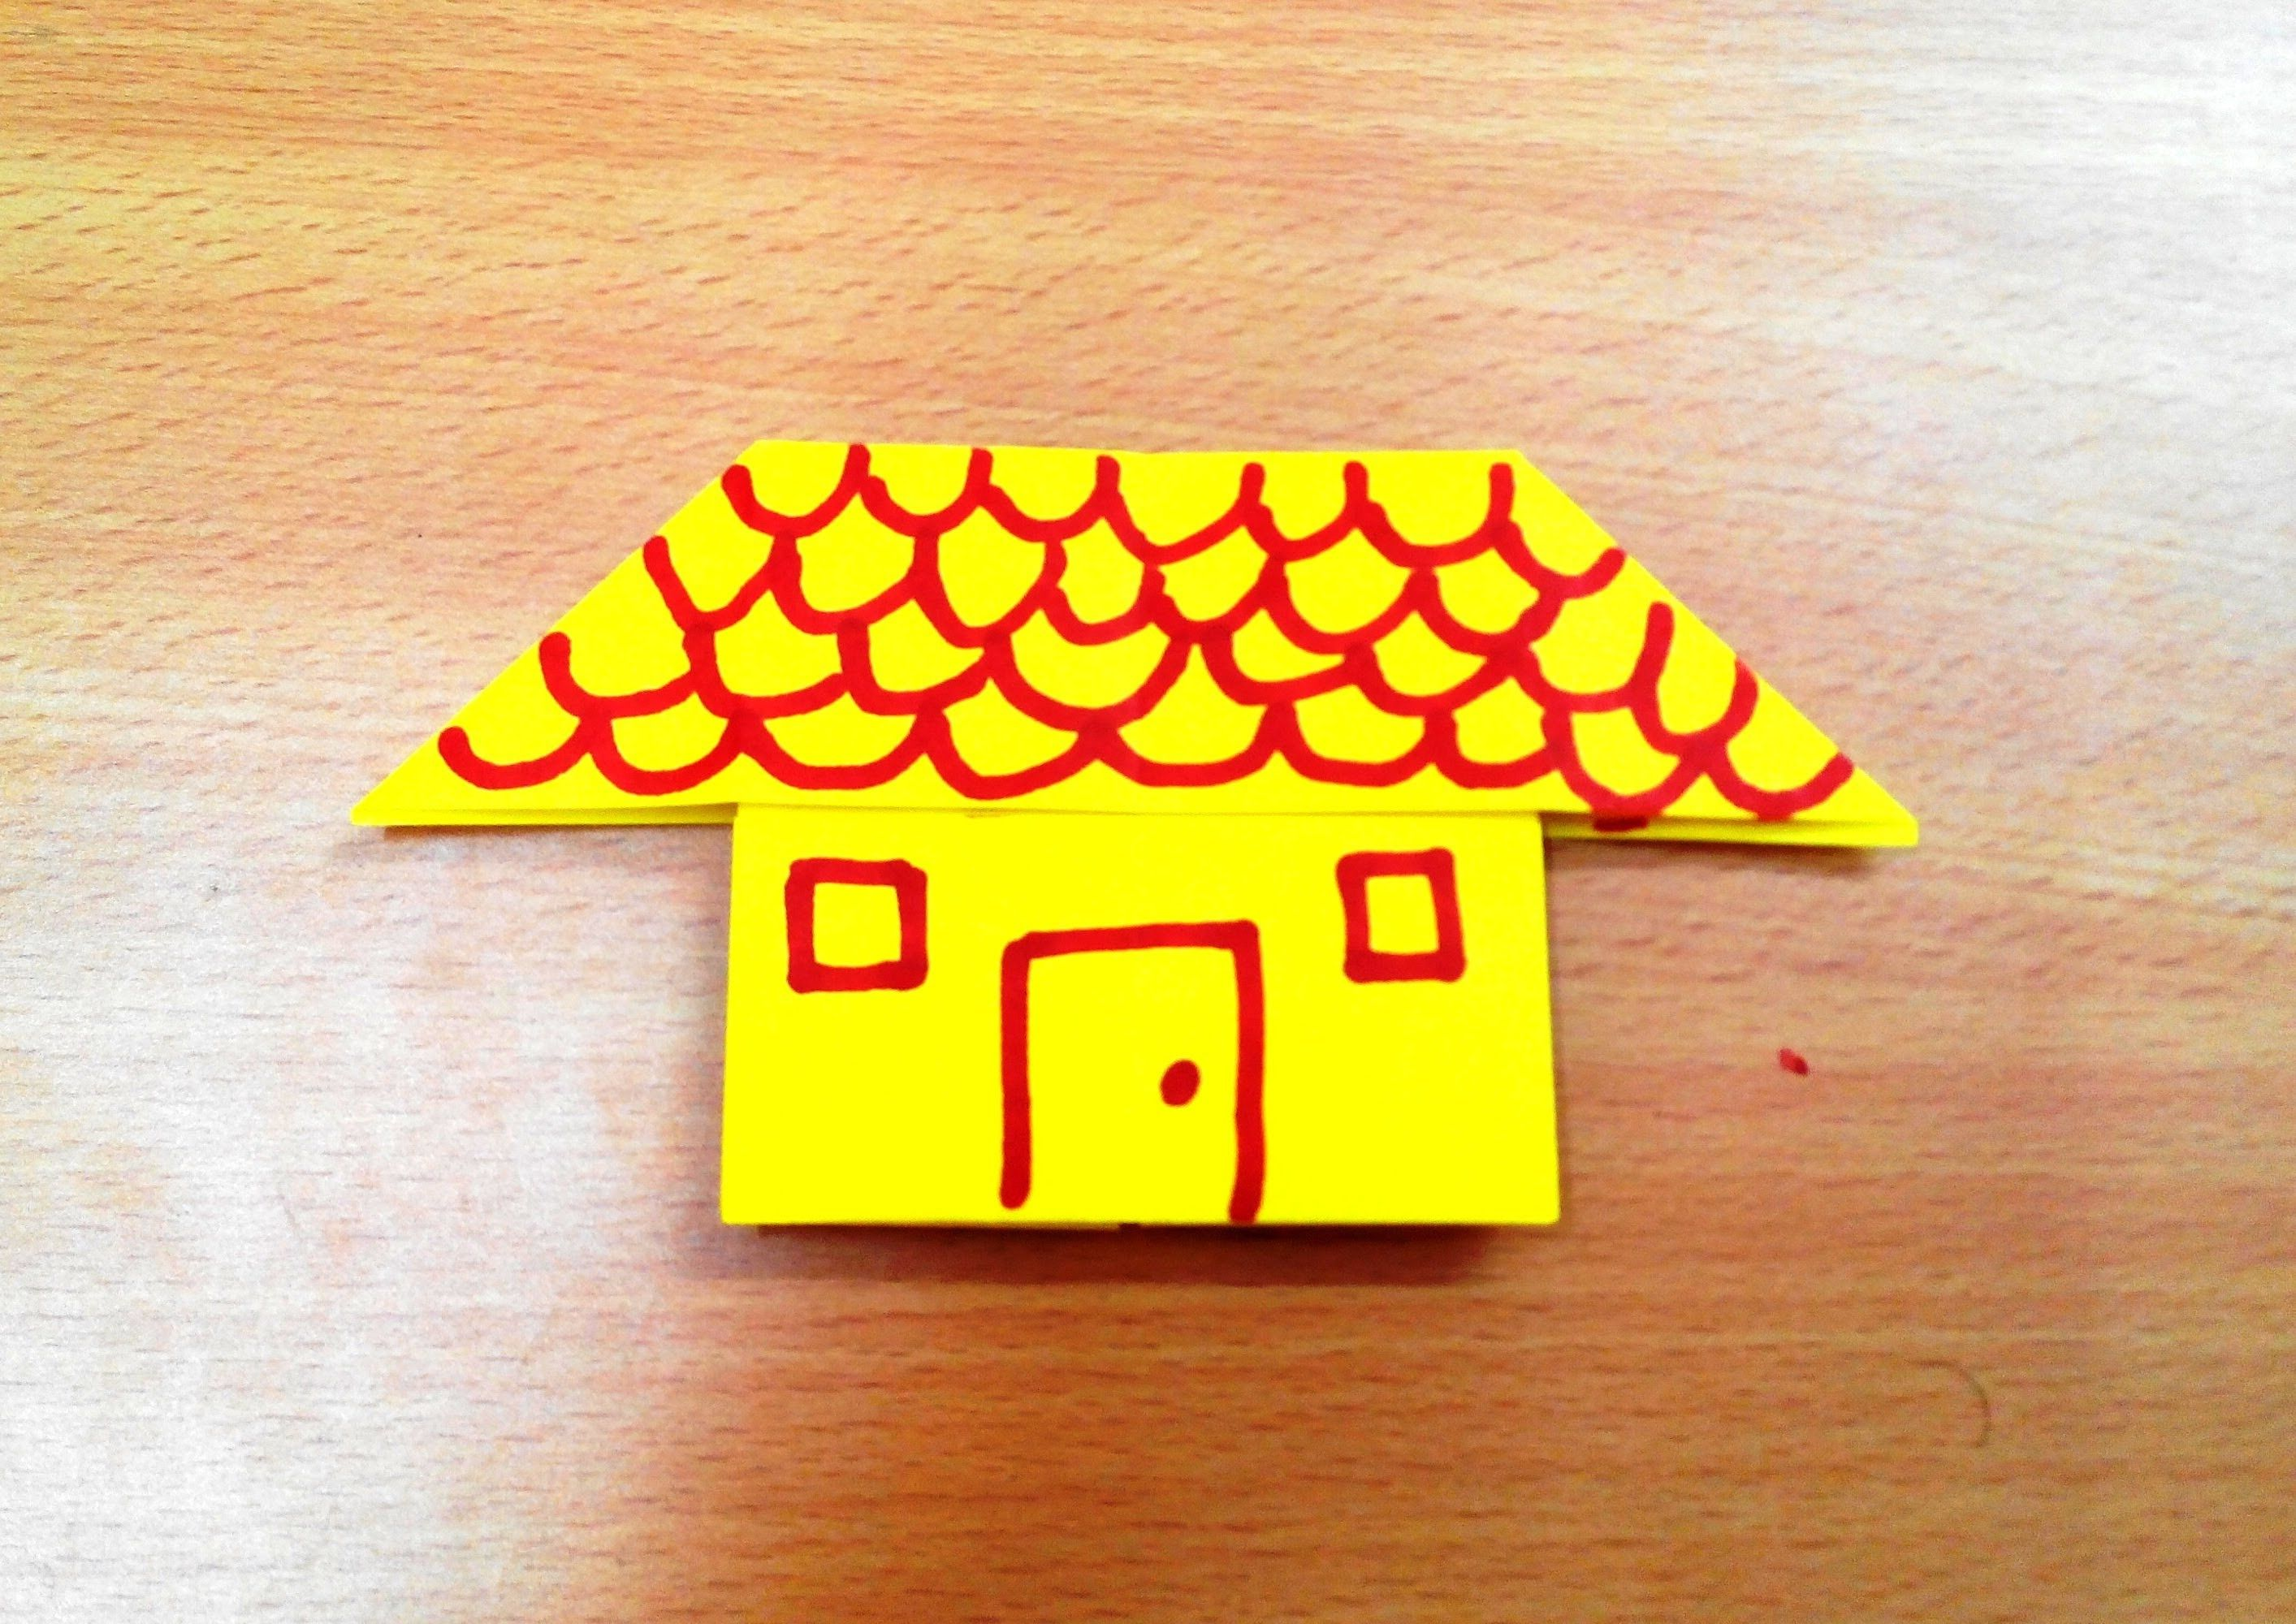 Learn how to make an origami paper house step by step